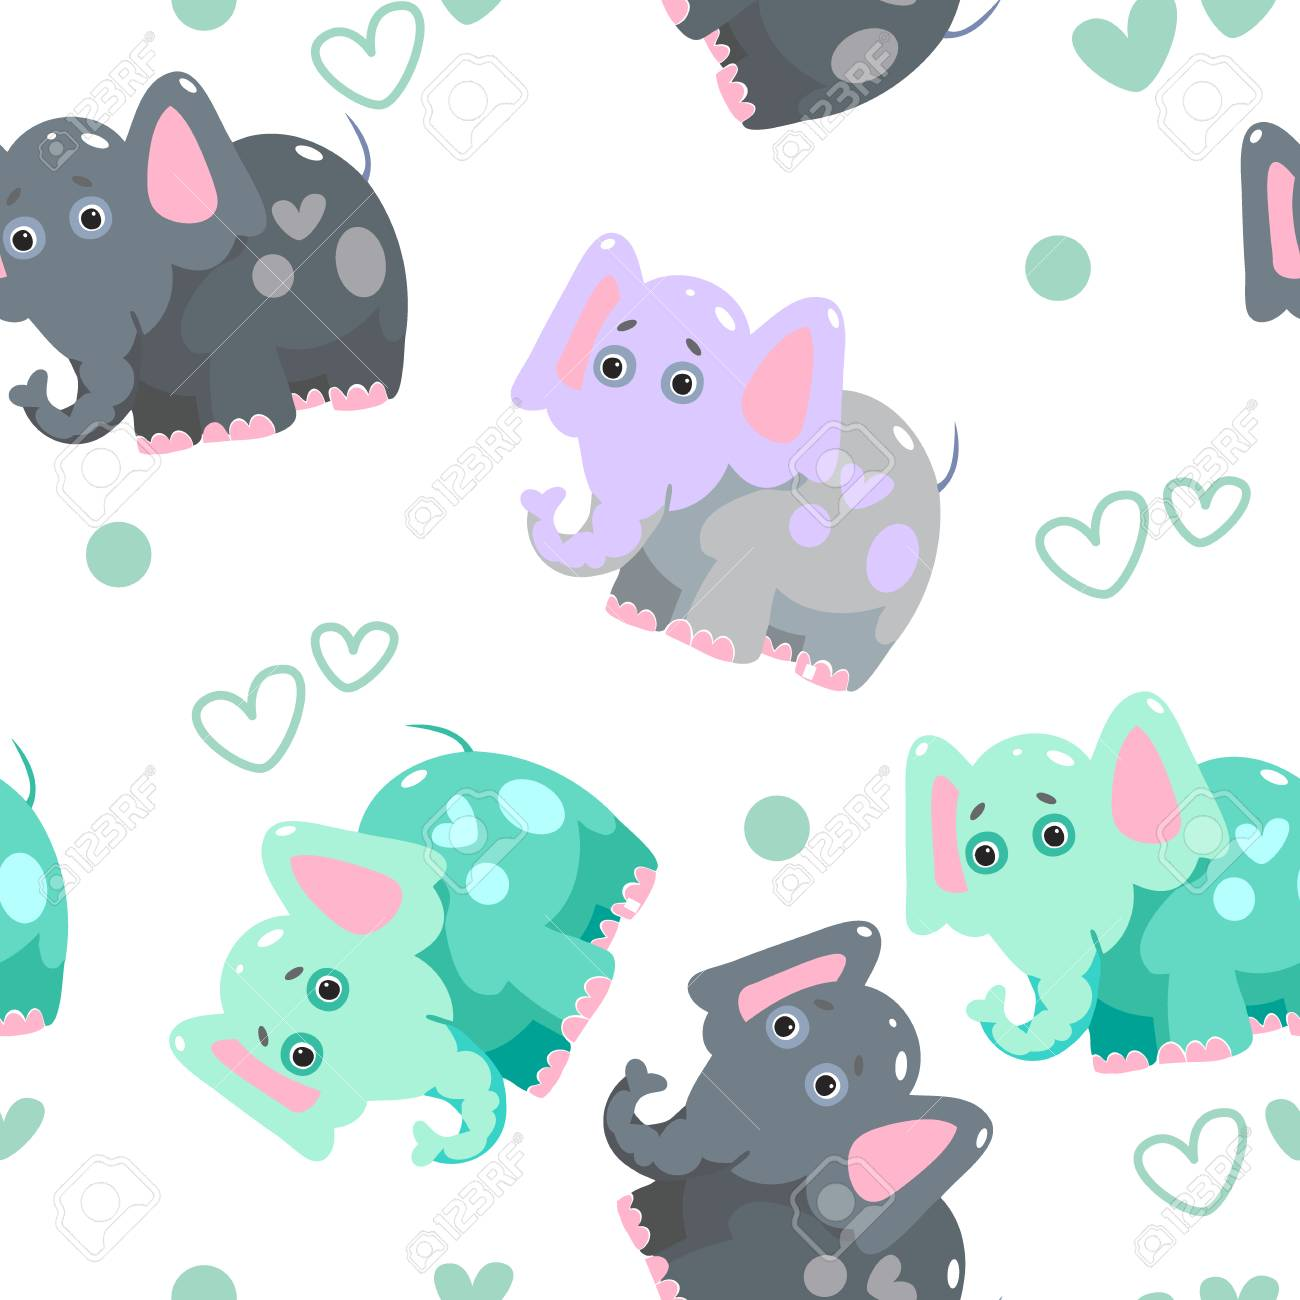 Texture Of Cheerful Colorful Elephants And Hearts Fantasy Pattern Can Be Used For Wallpaper